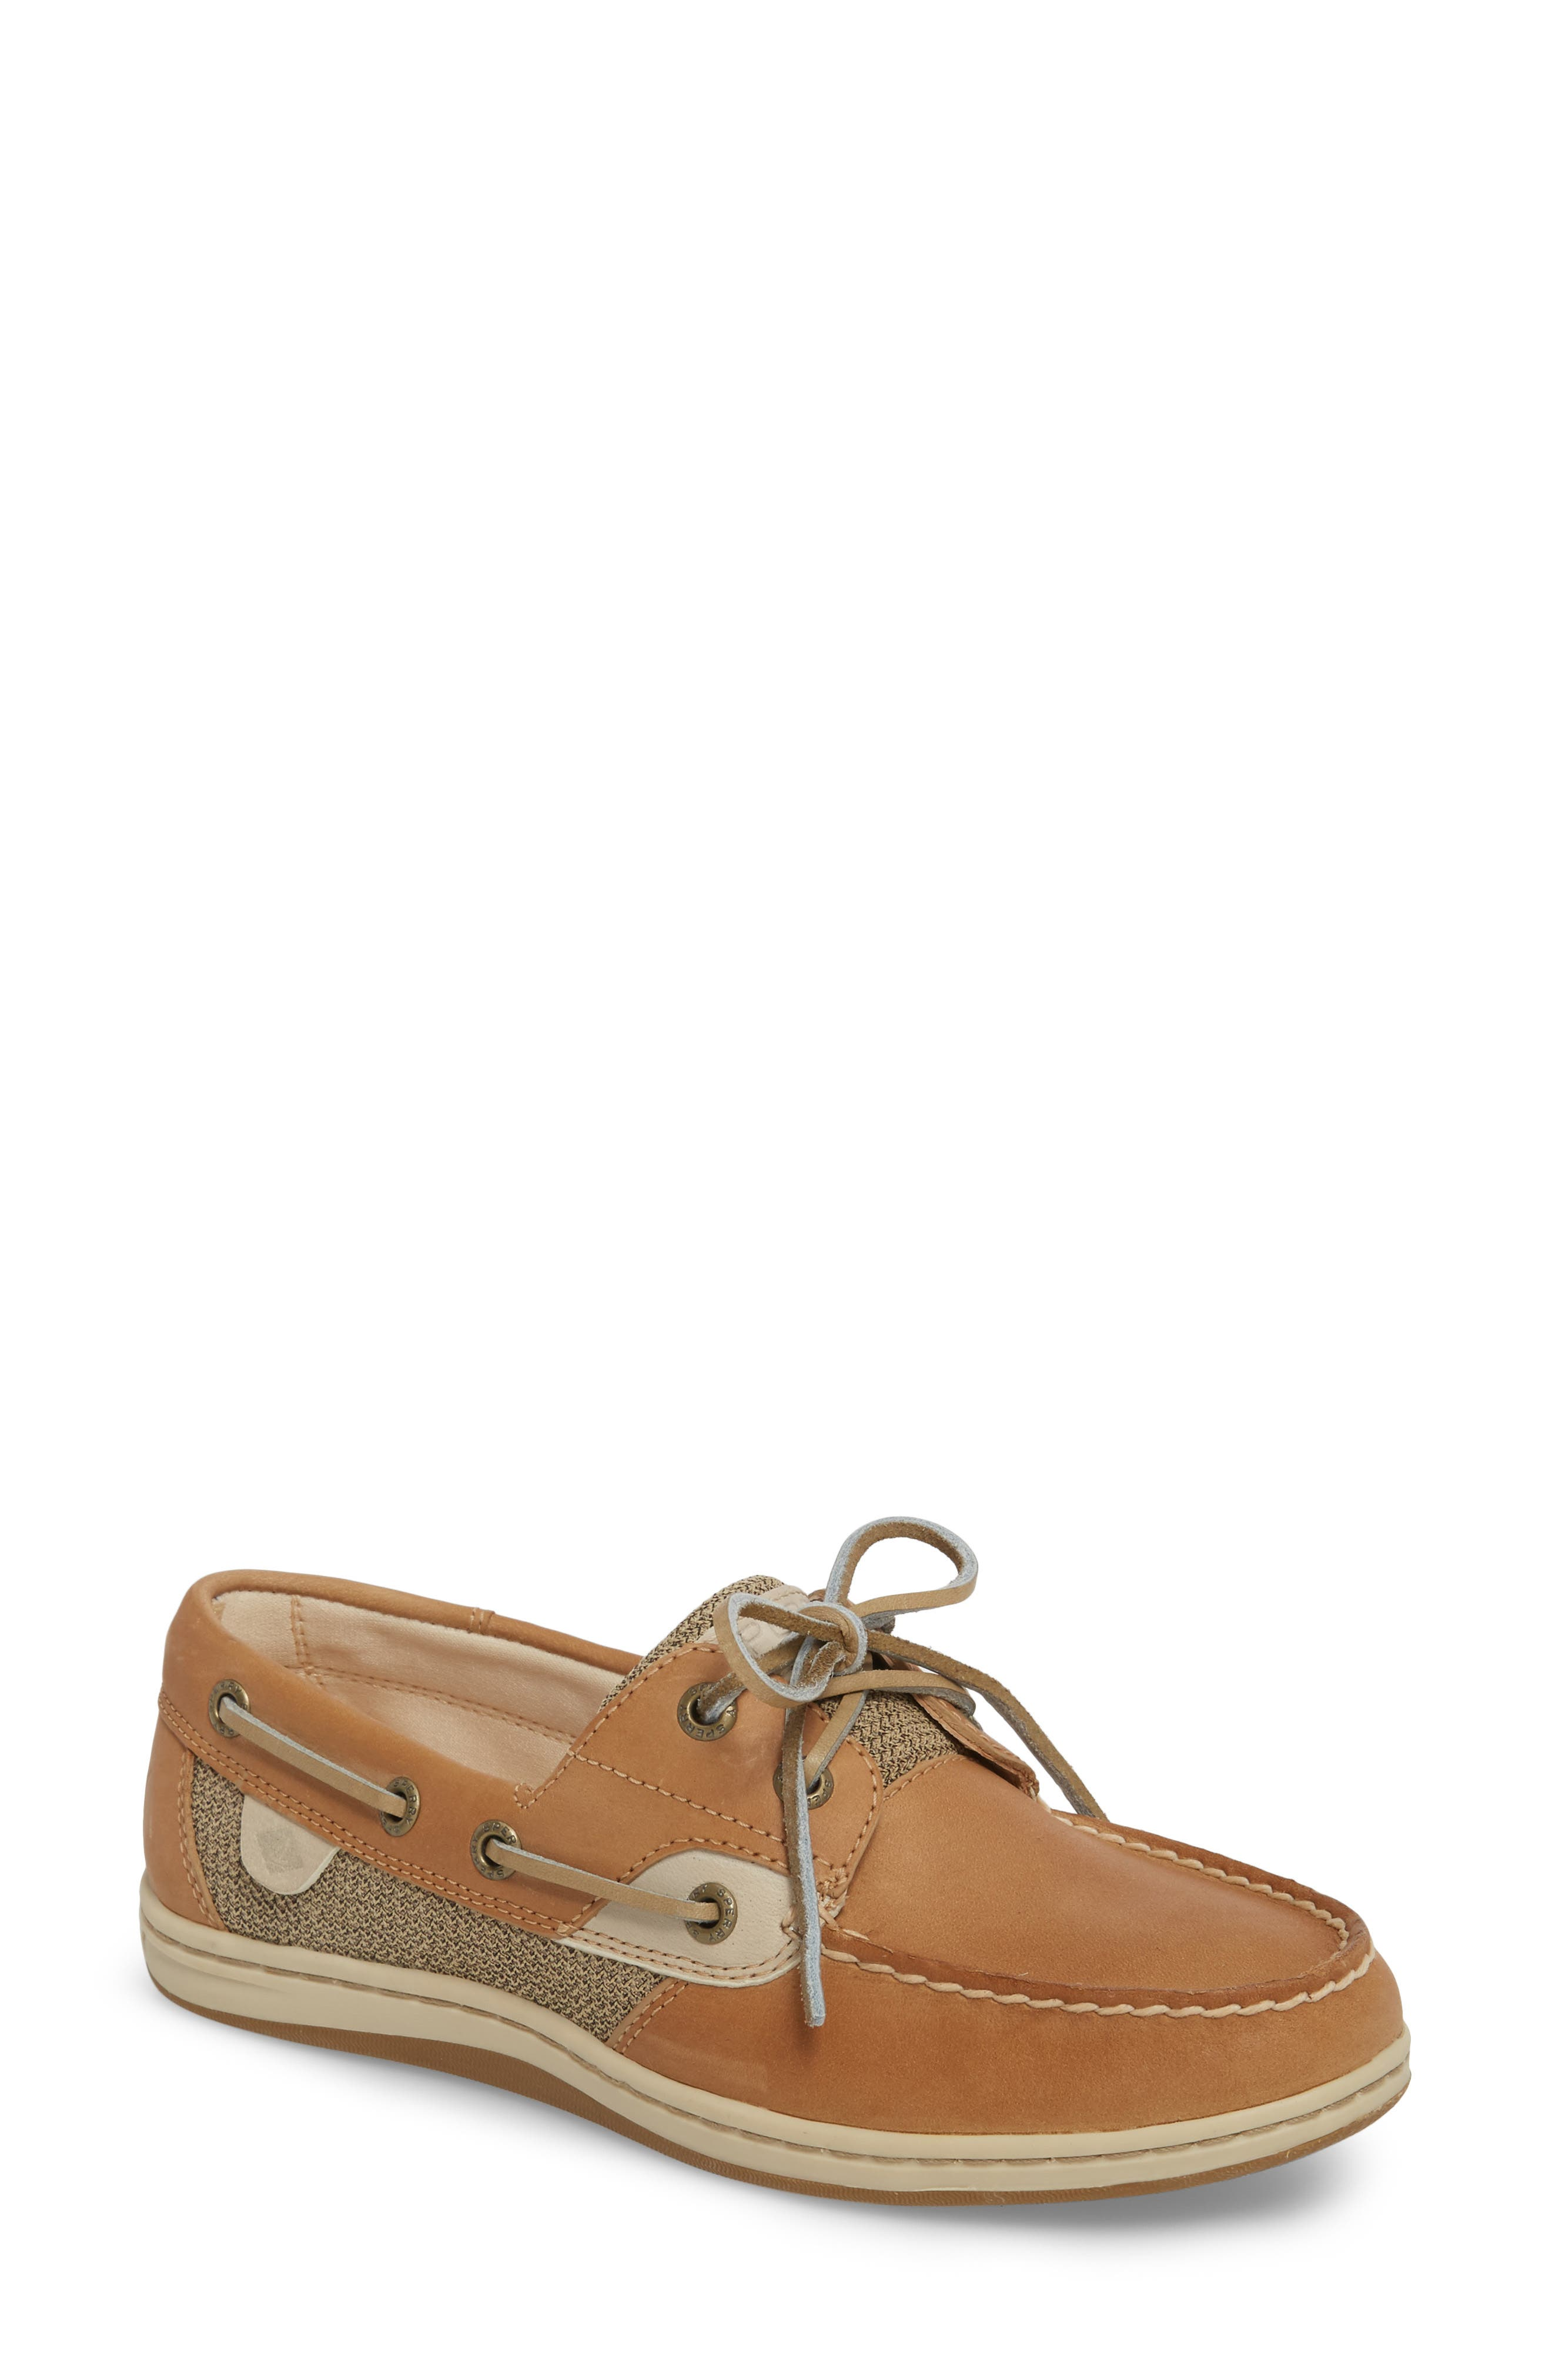 Top-Sider Koifish Loafer,                             Main thumbnail 1, color,                             Linen Oat Leather